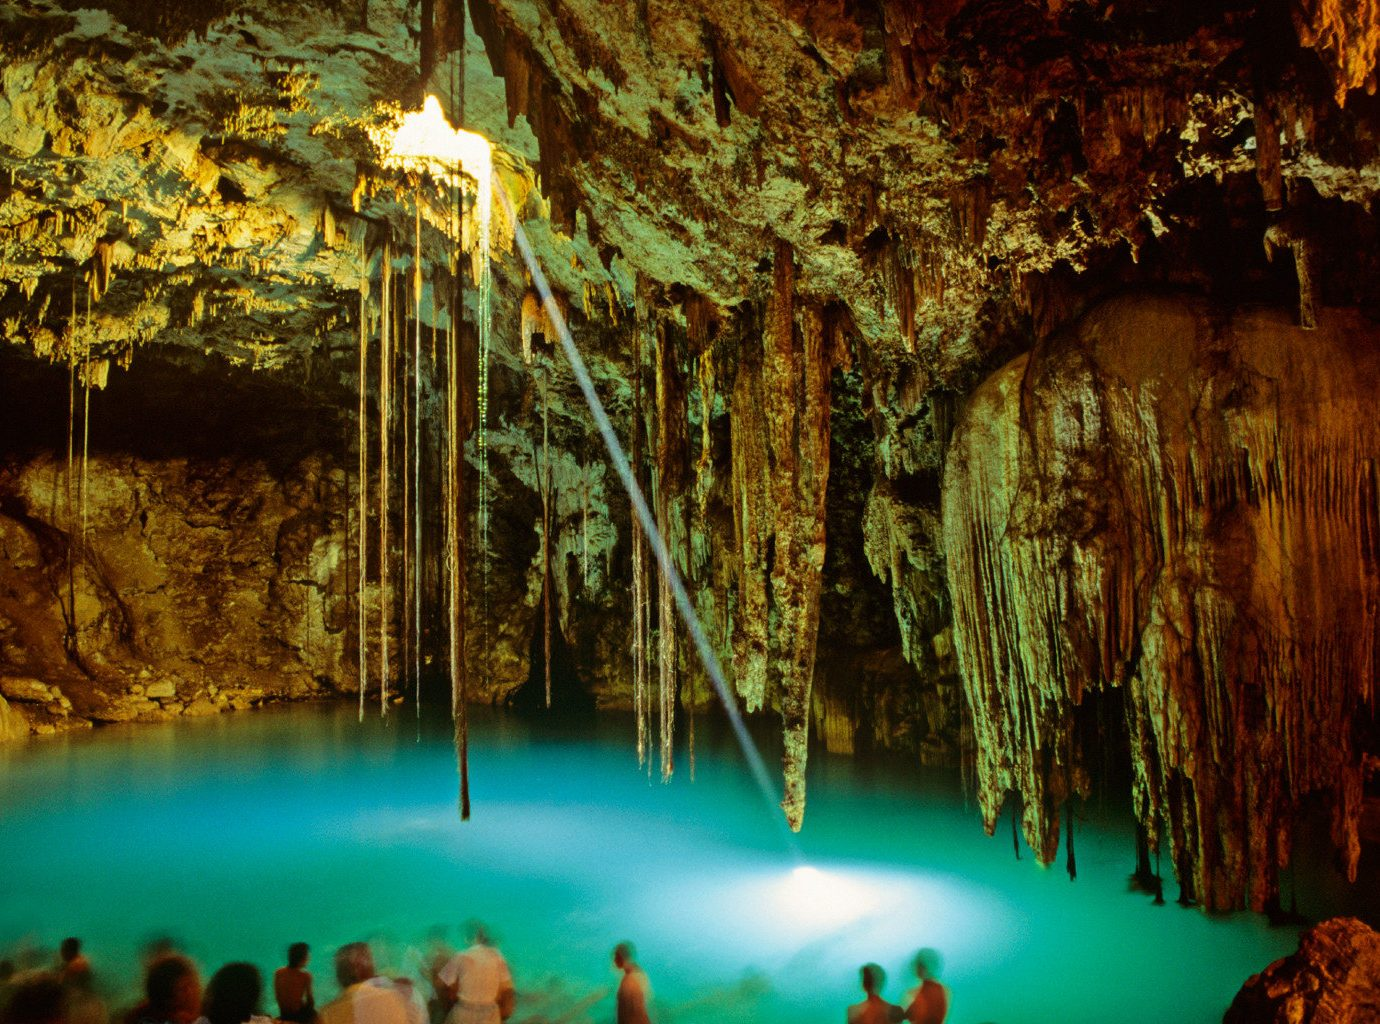 Adventure cenote Chichen Itza Cultural Outdoor Activities Scenic views Trip Ideas cave geographical feature Nature landform reflection formation Jungle